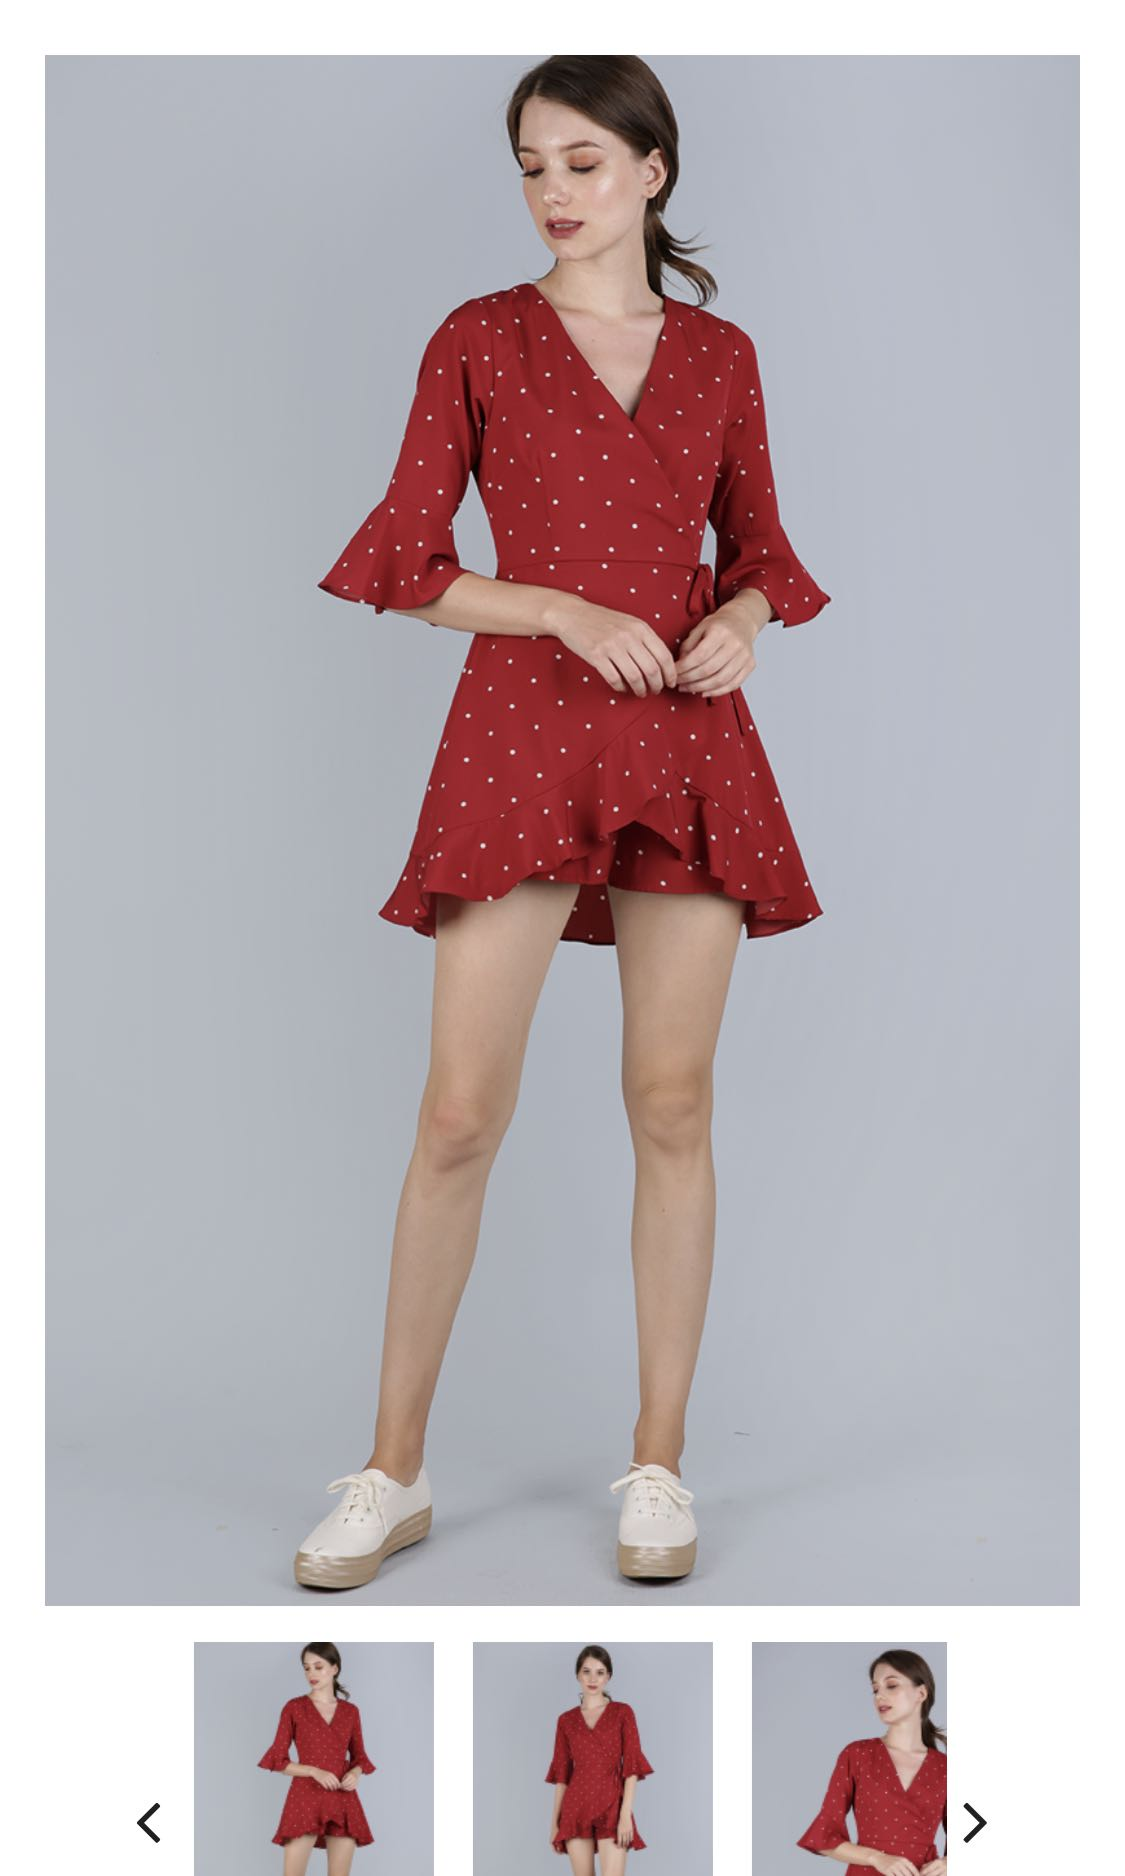 6971256898fd Hyacinth frilly romper (red polka dots) TTR